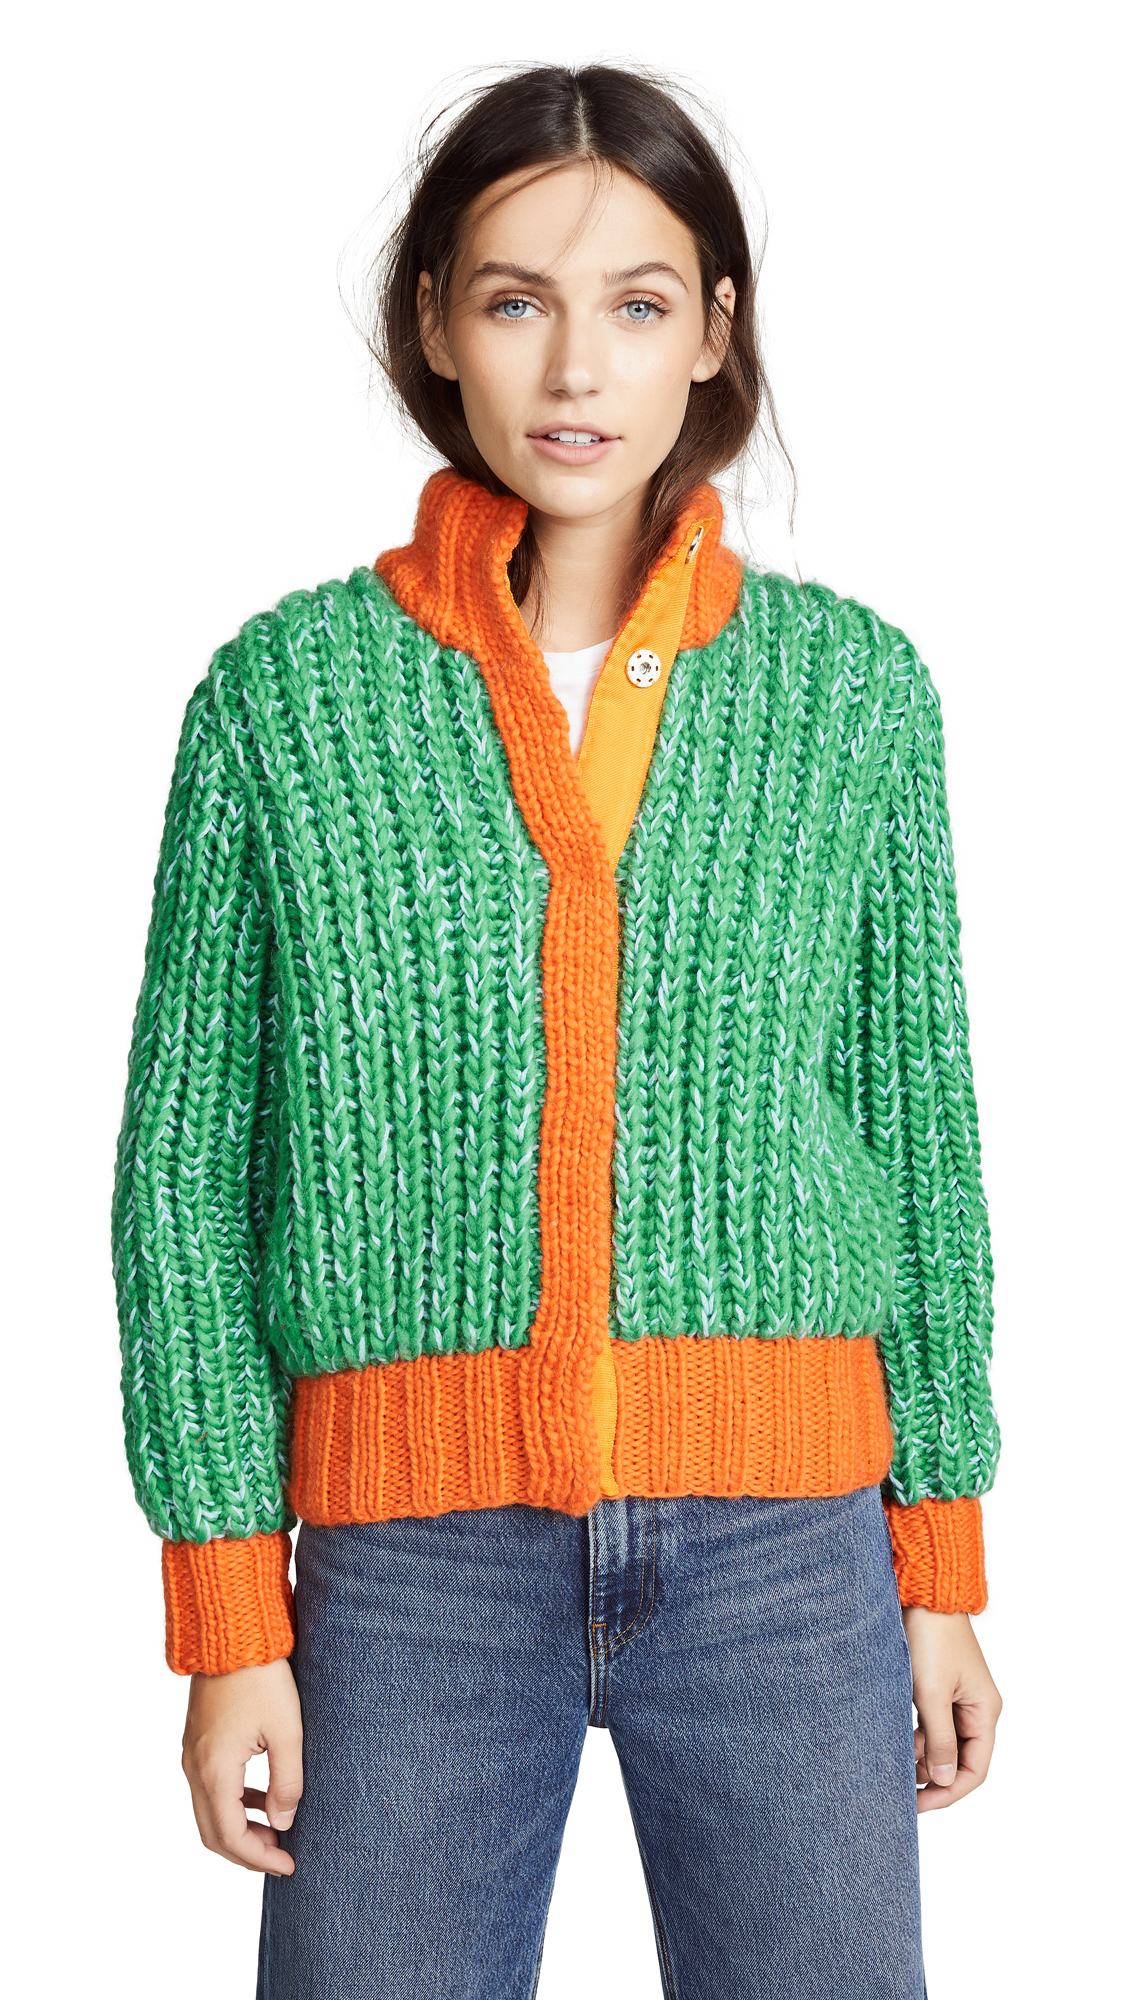 Novis Jagger Cropped Hand Knit Cardigan In Carrot/Leaf Green